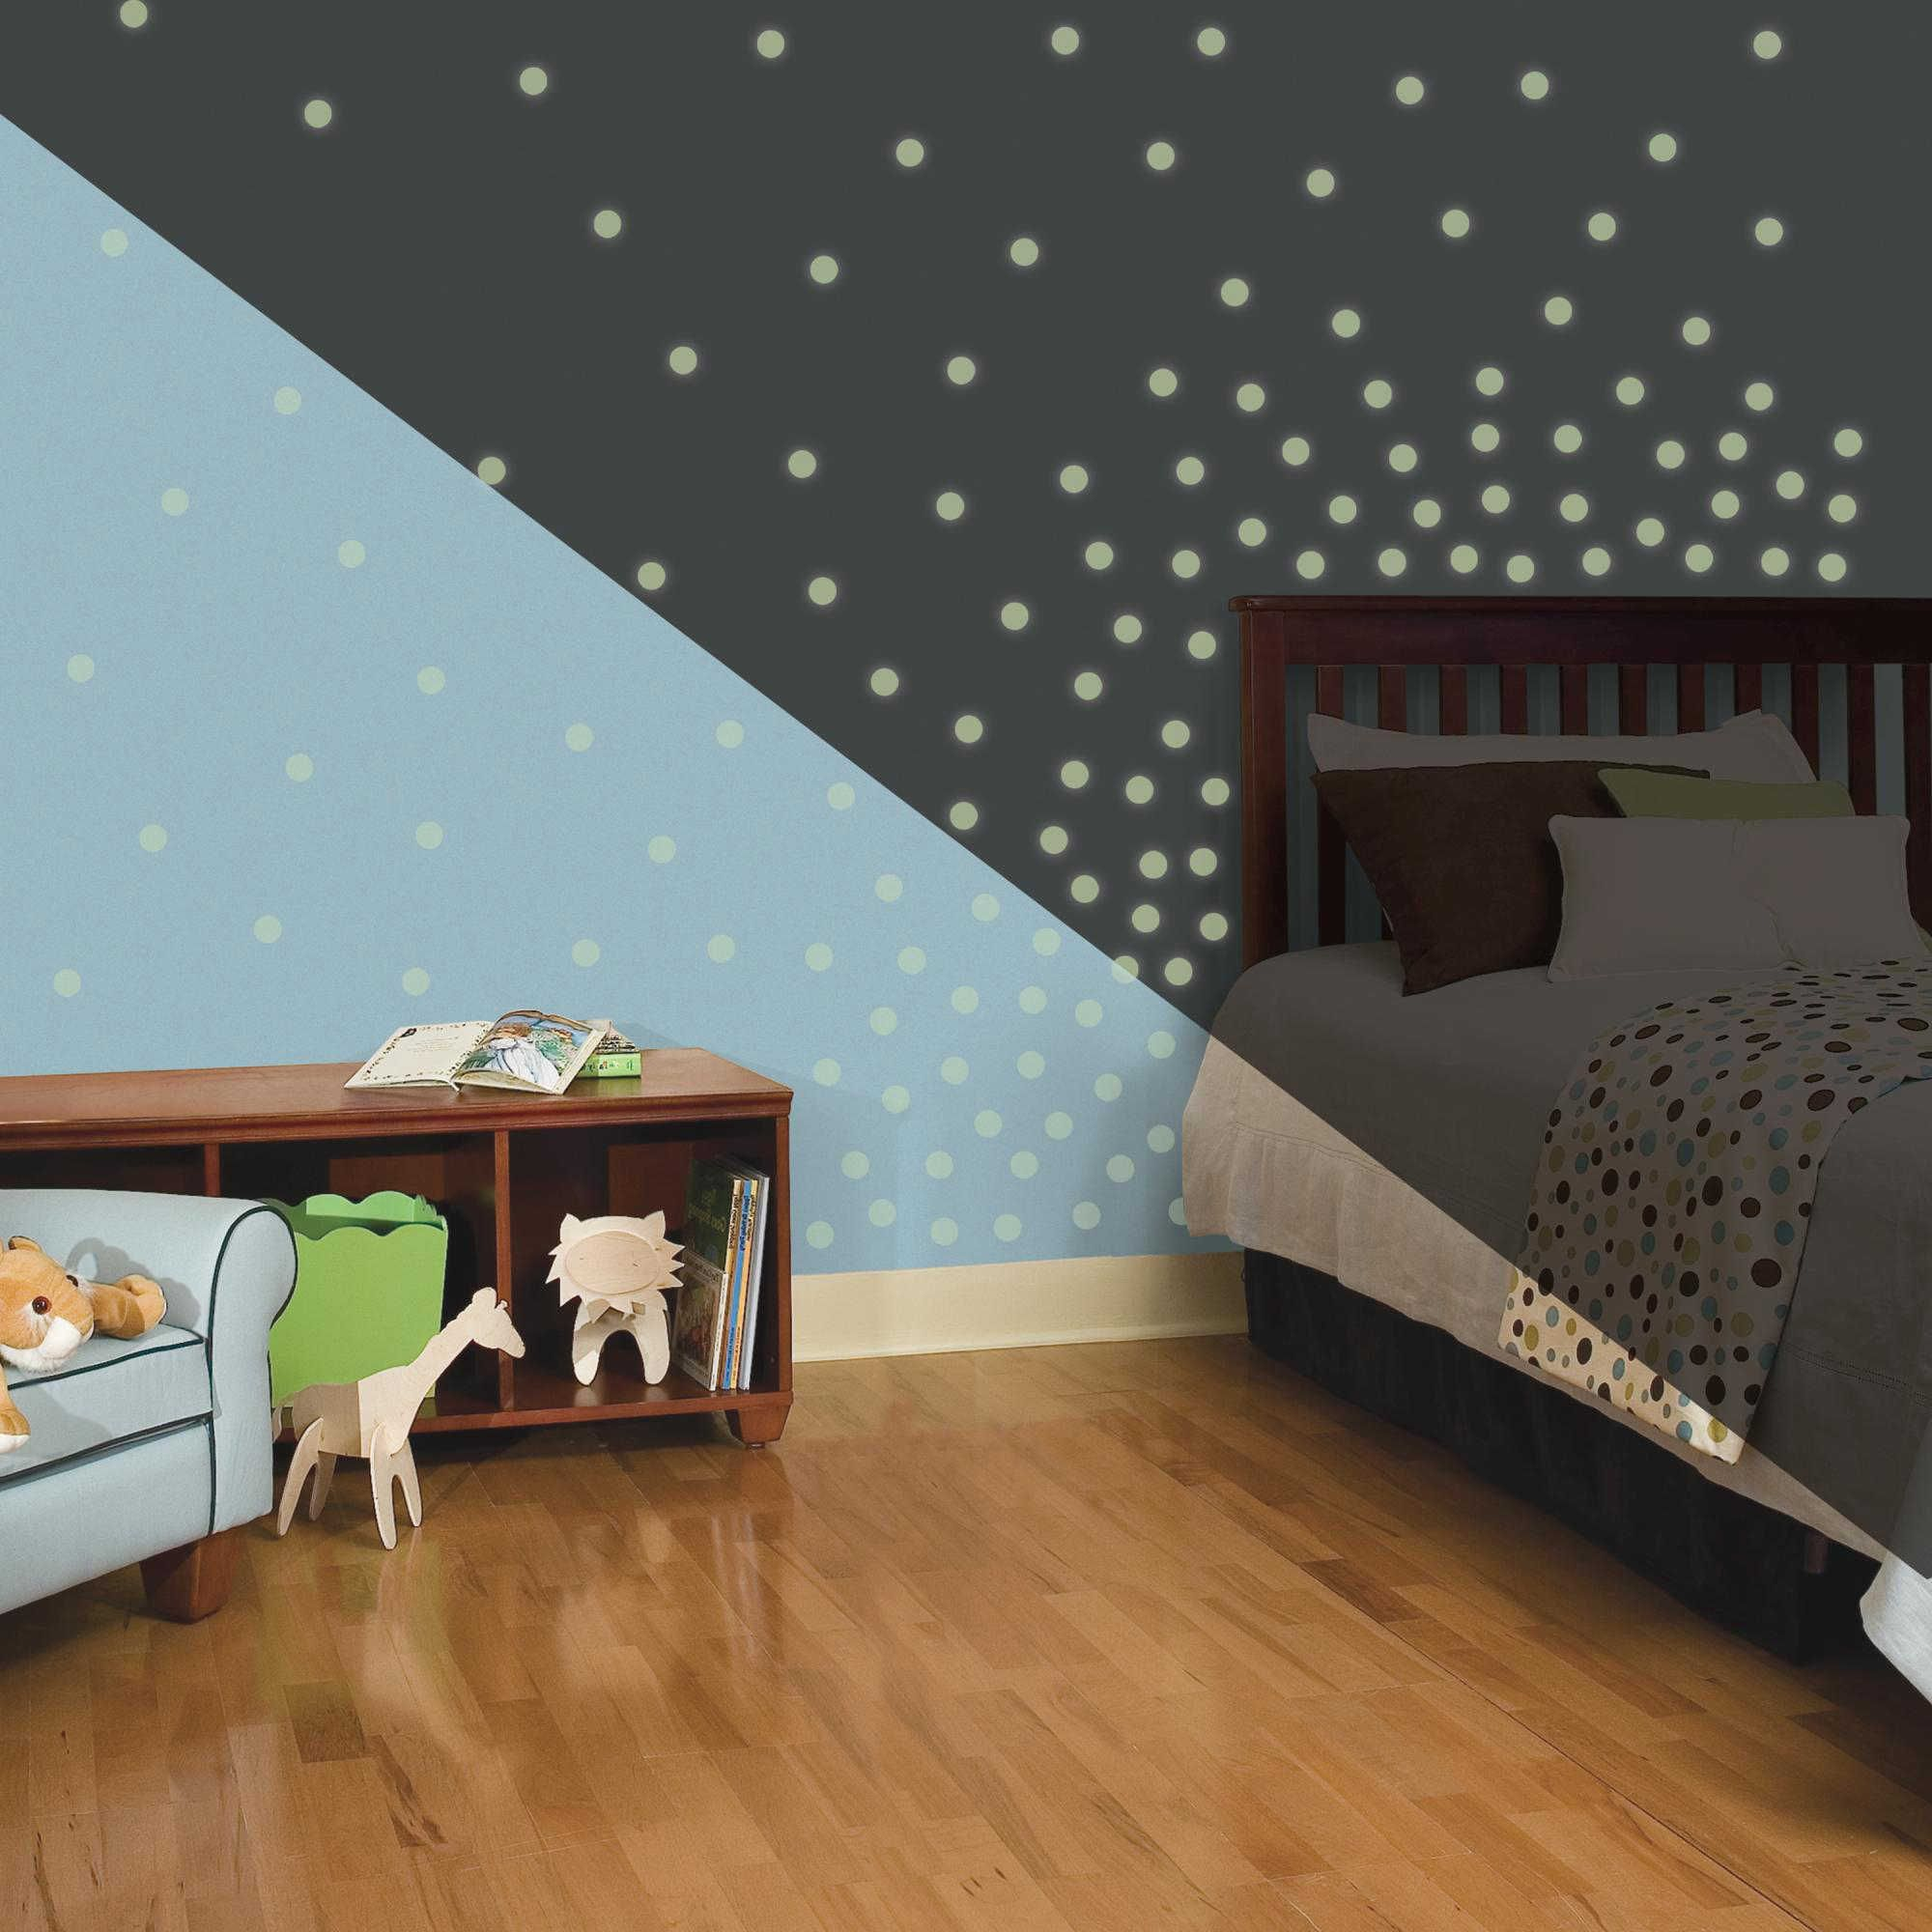 RoomMates Glow in the Dark Dots Peel and Stick Wall Decals & RoomMates Glow in the Dark Dots Peel and Stick Wall Decals ...